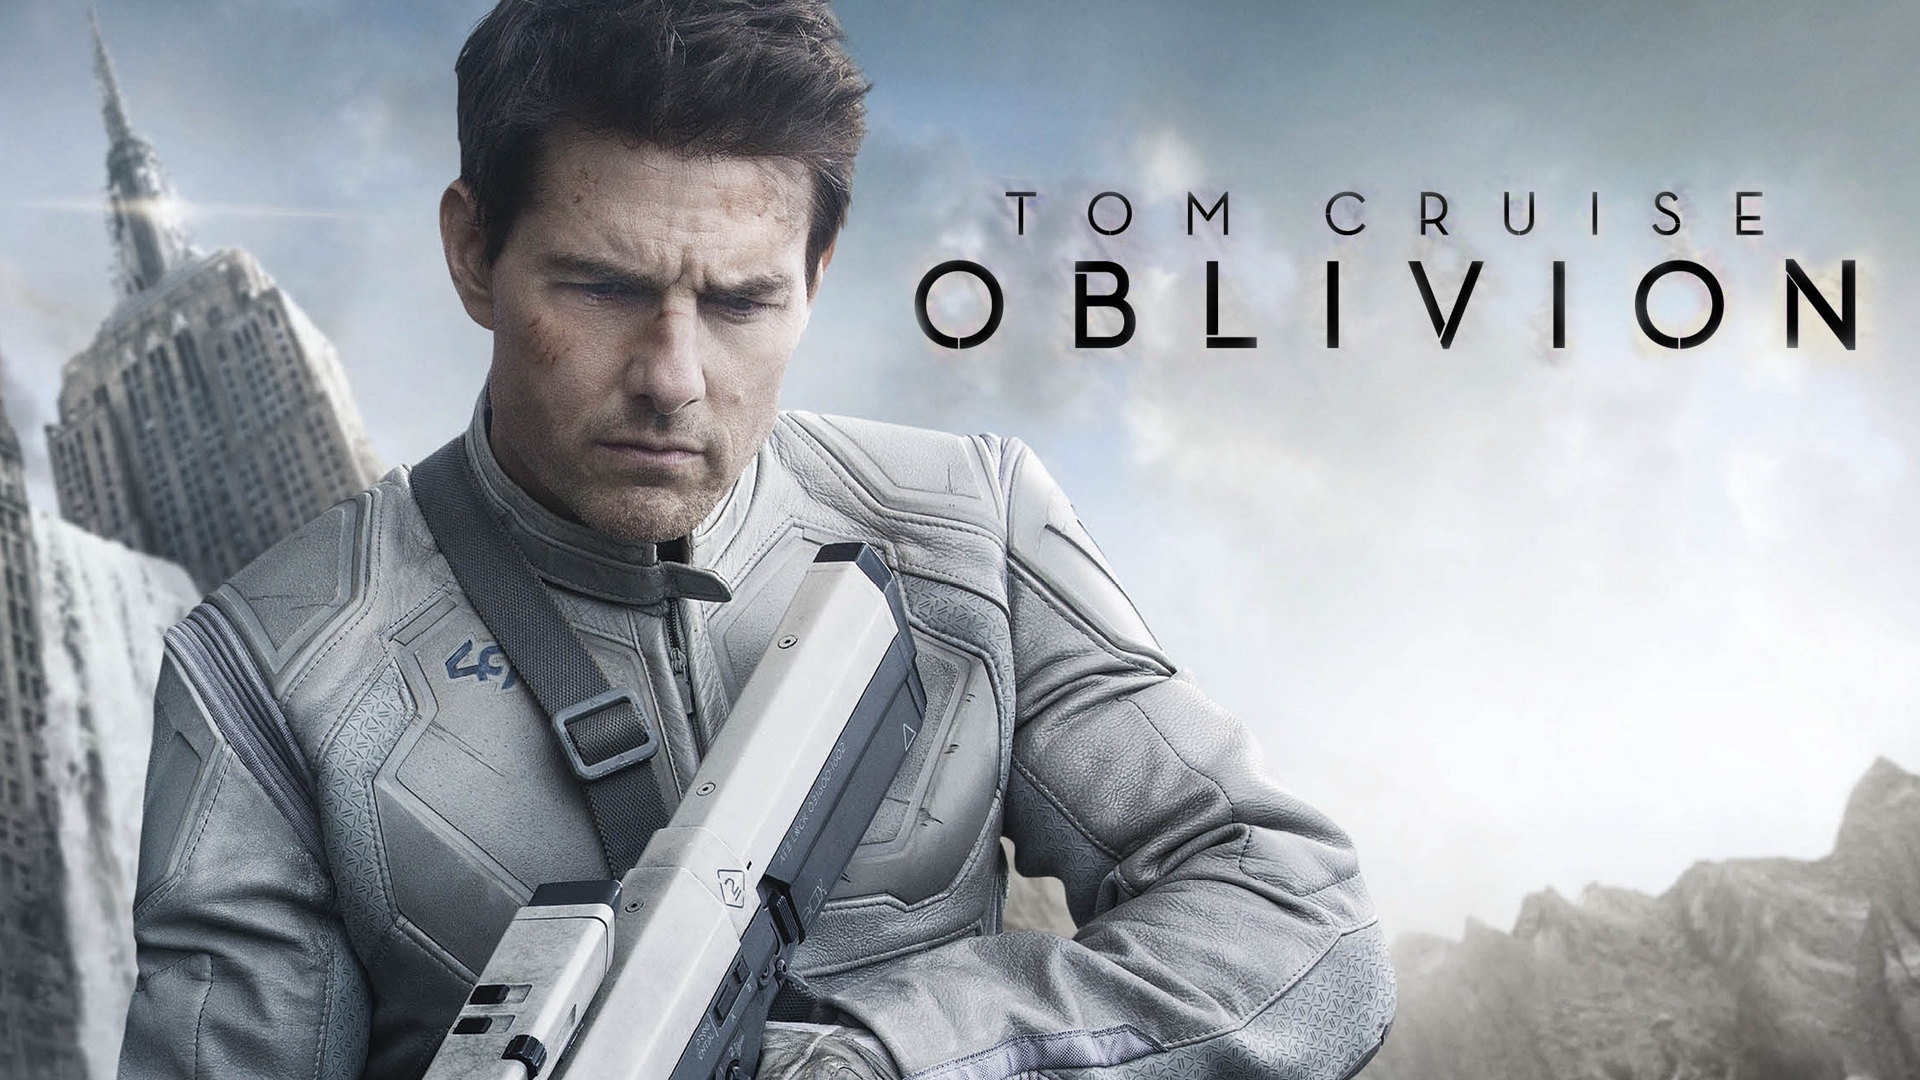 Oblivion Tom Cruise Wallpaper HD 7040343 1920x1080